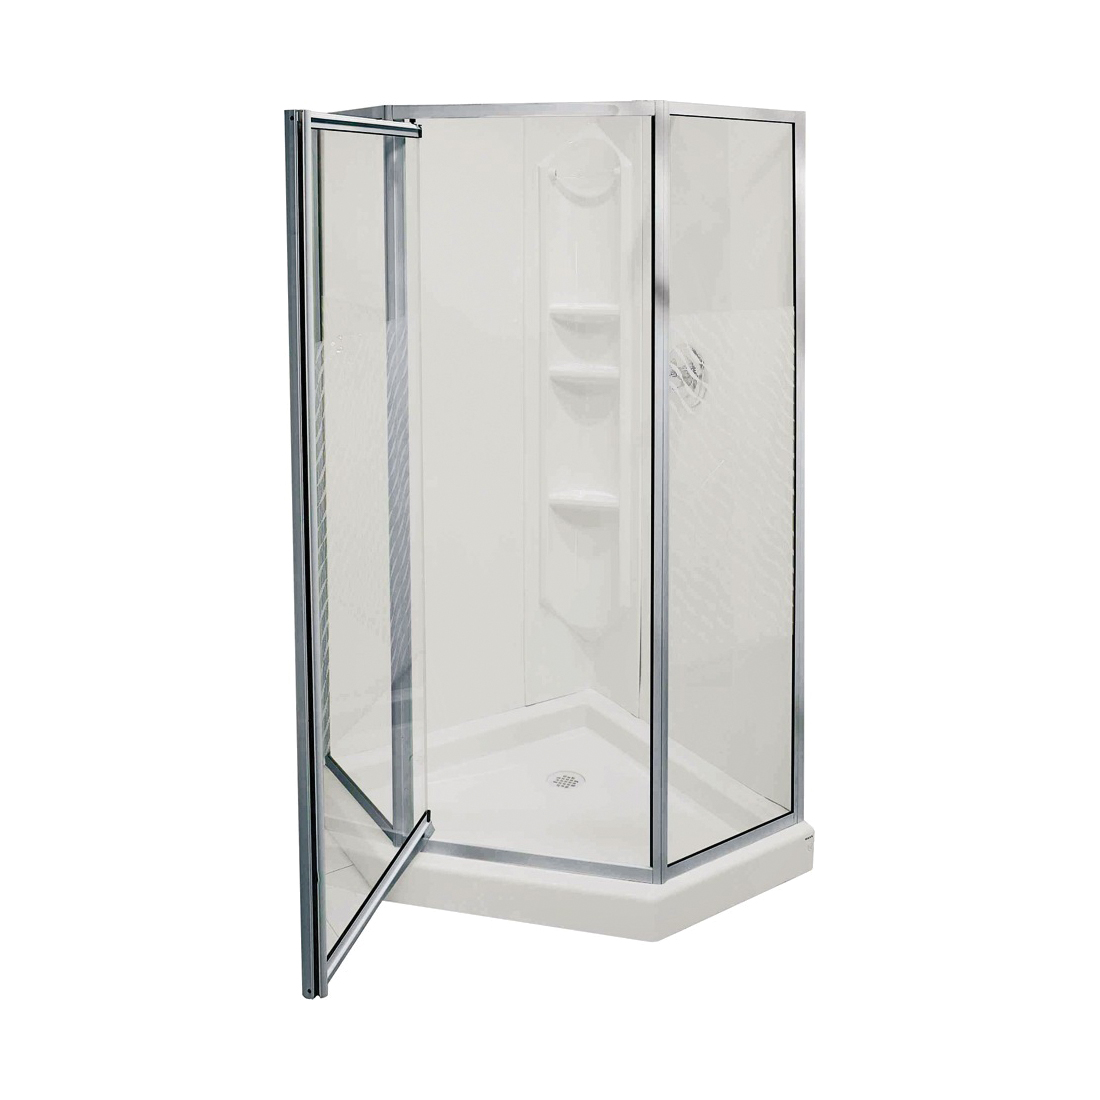 Picture of MAAX Himalaya 101694-000-129-107 Shower Kit, 38 in L, 38 in W, 74-1/4 in H, Polystyrene, Chrome, 3-Wall Panel